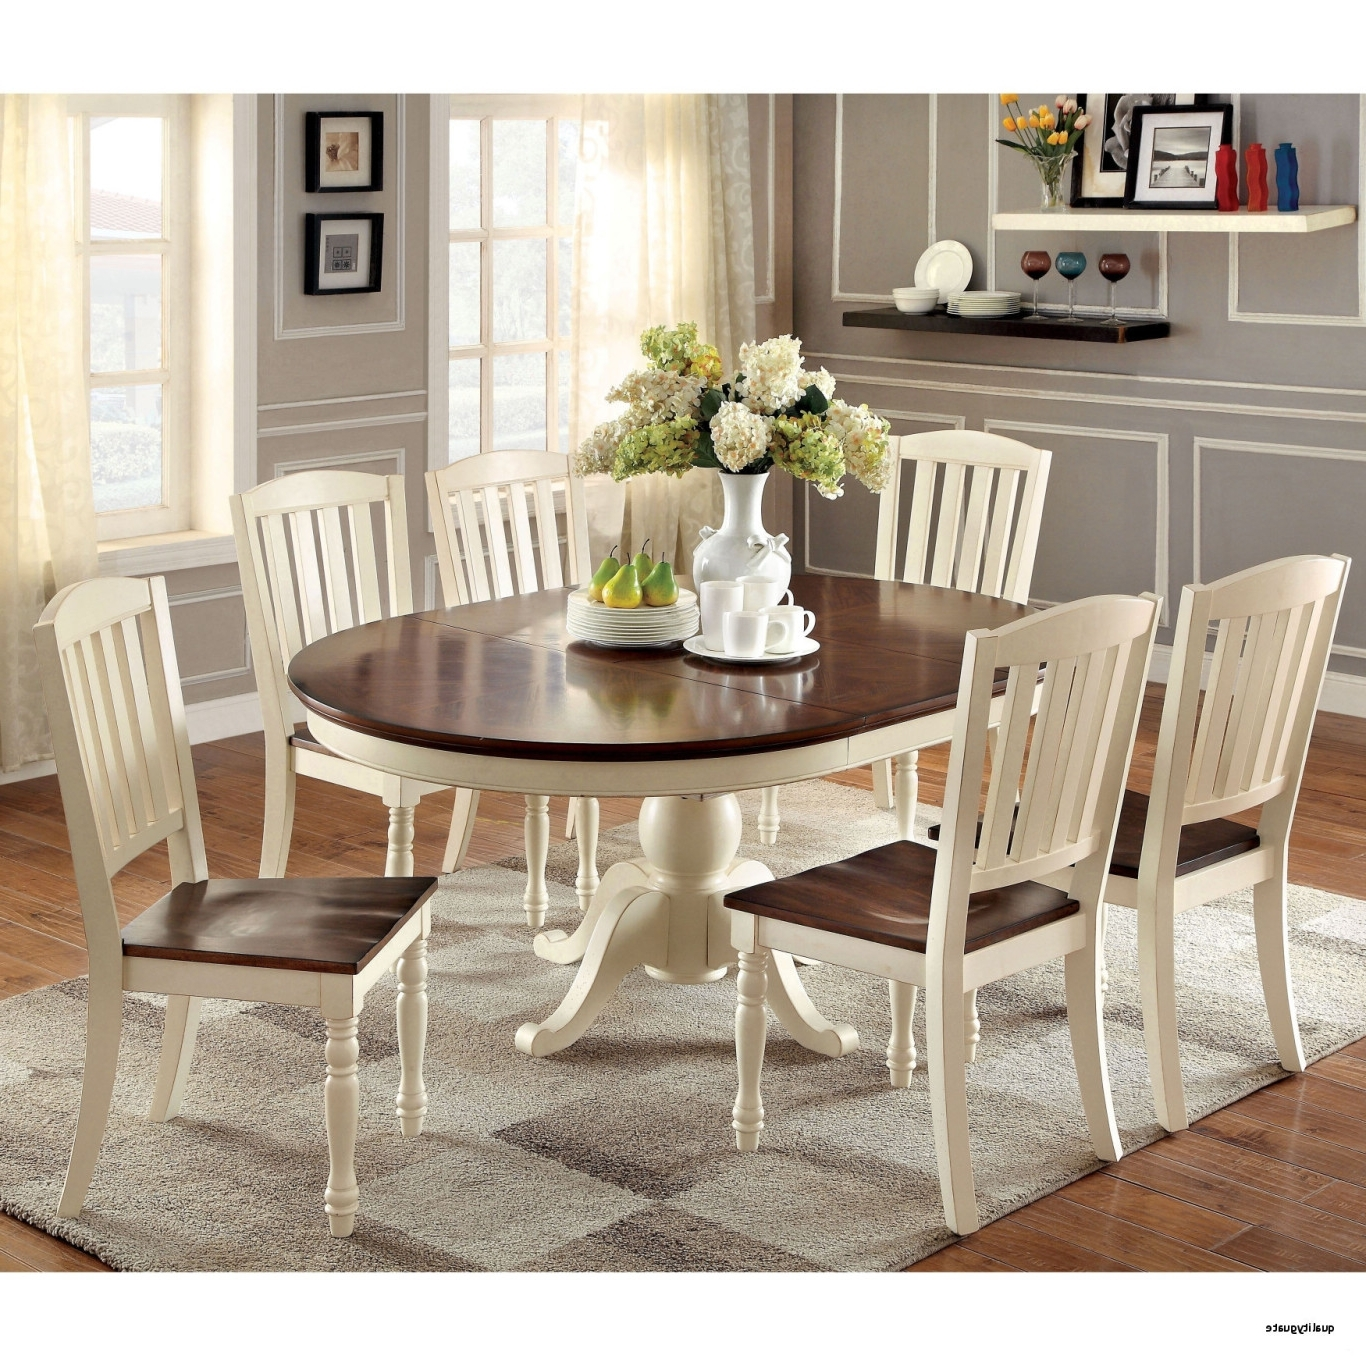 Classy 99 Small Round Kitchen Table And Chairs With This Practical In Preferred Small Round White Dining Tables (View 6 of 25)